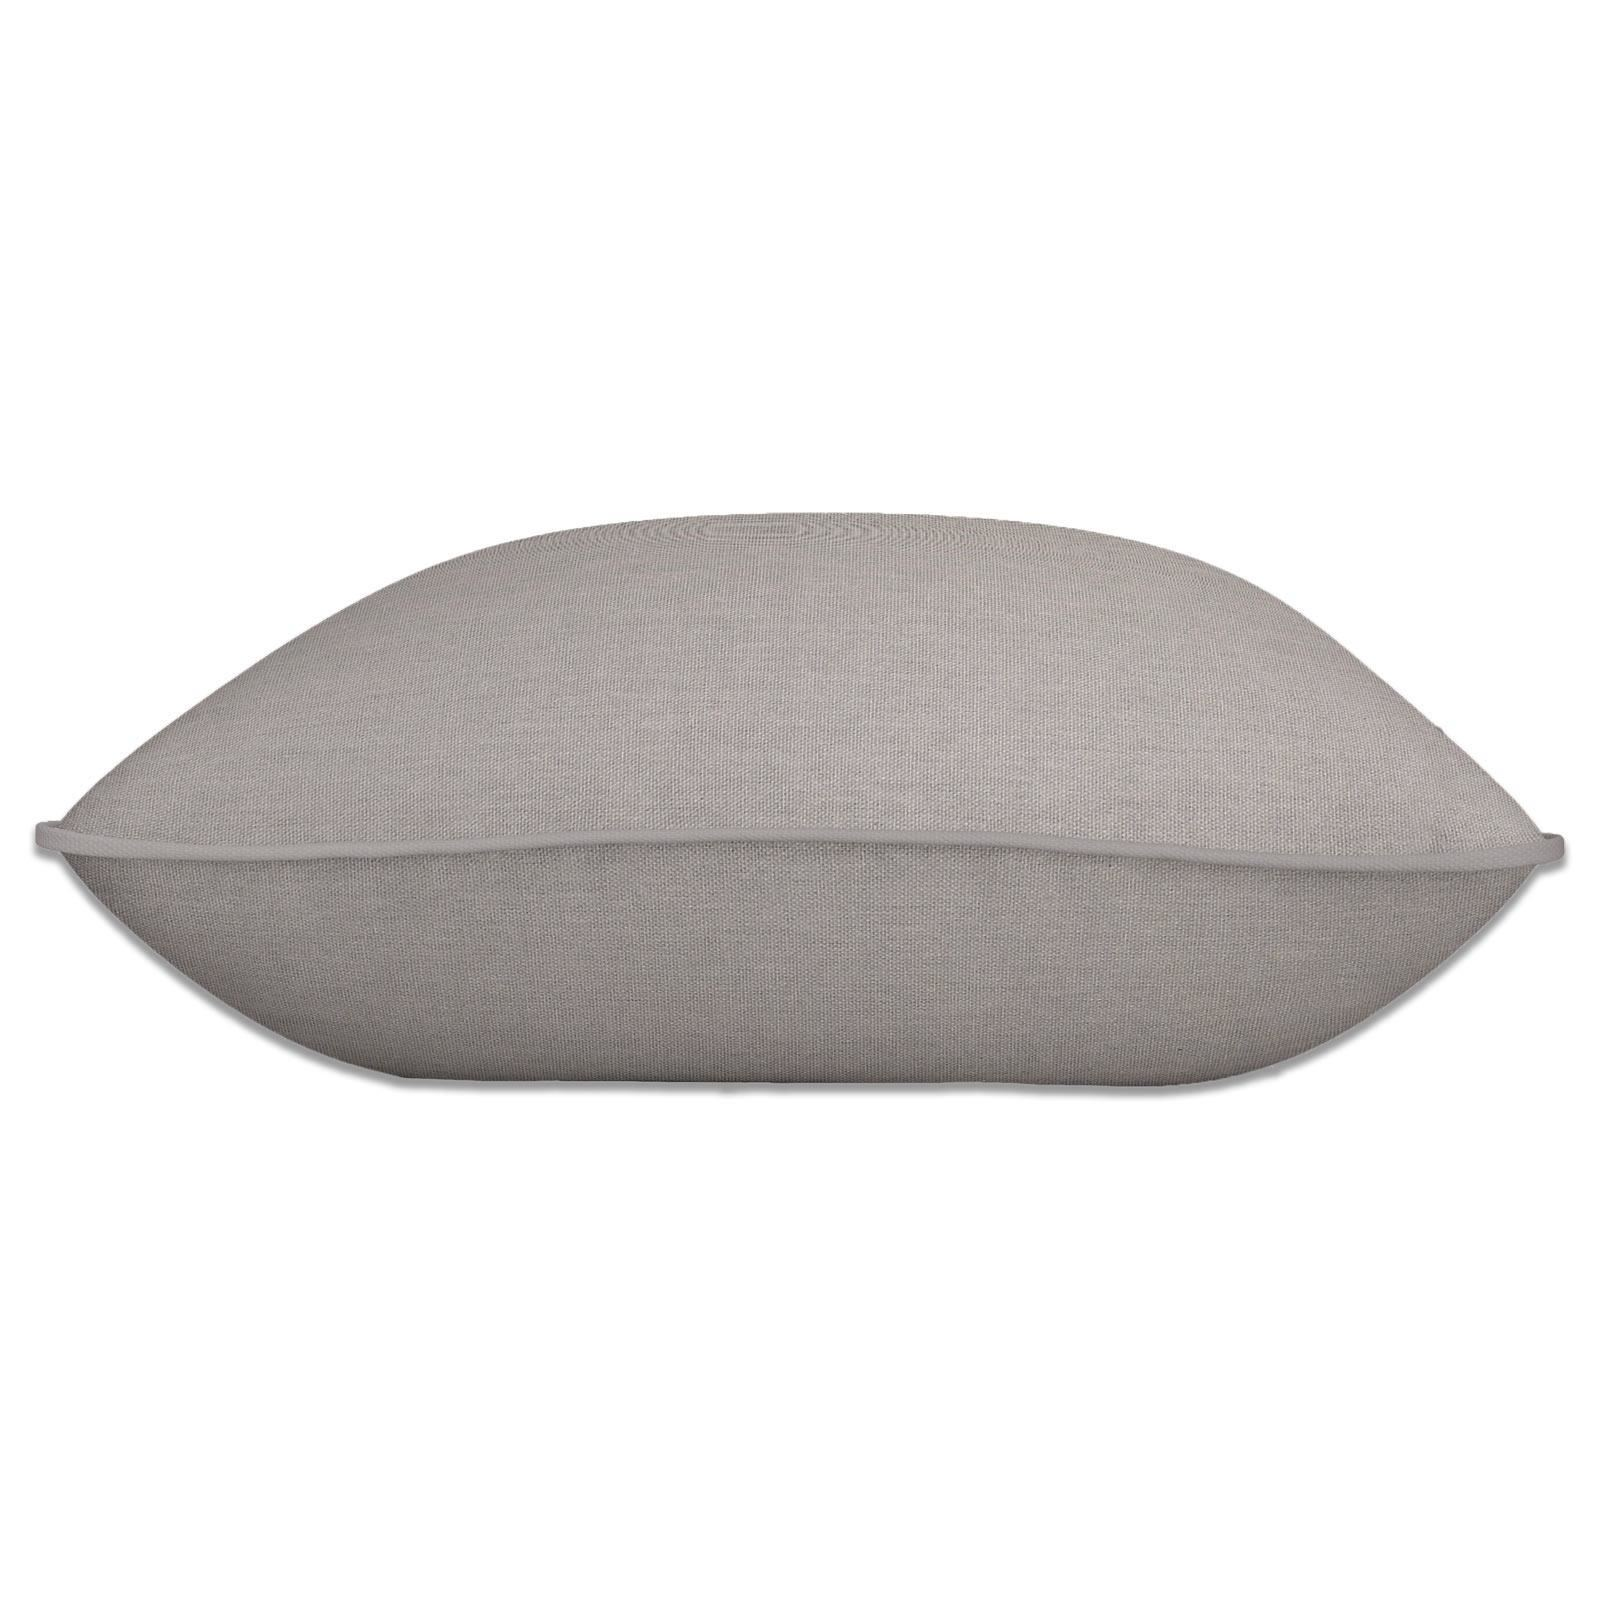 Grey-Ochre-Mustard-Cushion-Cover-Collection-17-034-18-034-Covers-Filled-Cushions thumbnail 63